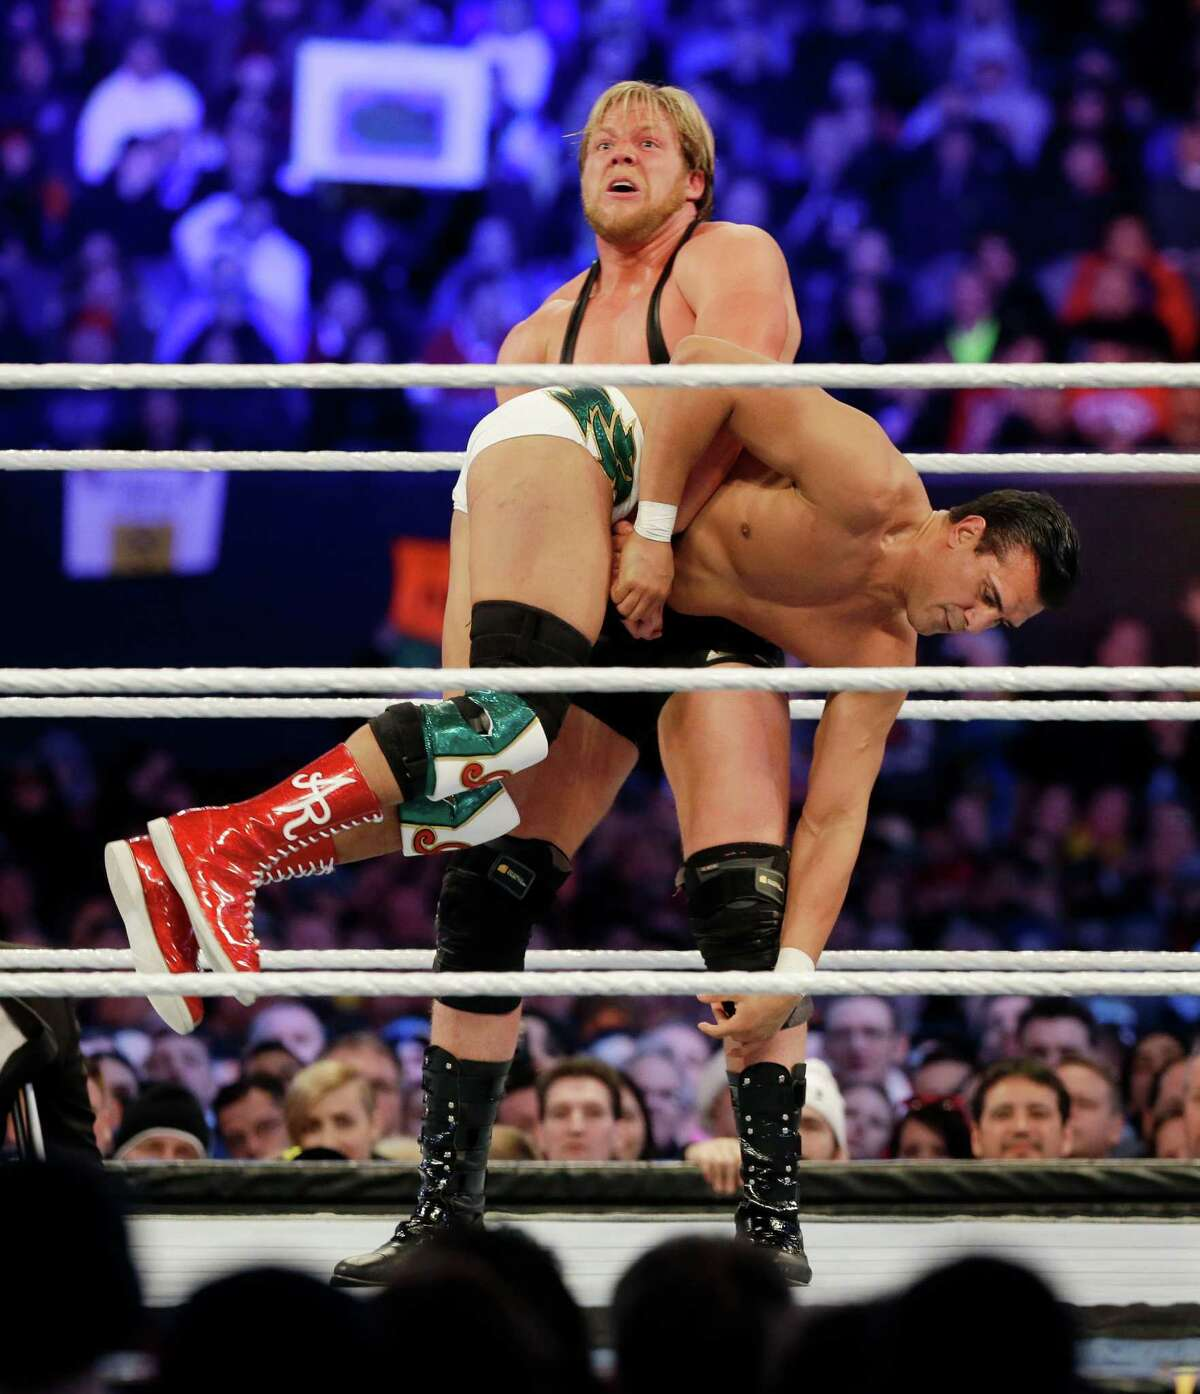 """Jacob """"Jake"""" Hager, Jr., known as Jack Swagger, top, lifts Jose Alberto Rodríguez, of Mexico, known as Alberto Del Rio as they wrestle Sunday, April 7, 2013, in East Rutherford, N.J., during the WWE Wrestlemania 29 event. (AP Photo/Mel Evans)"""